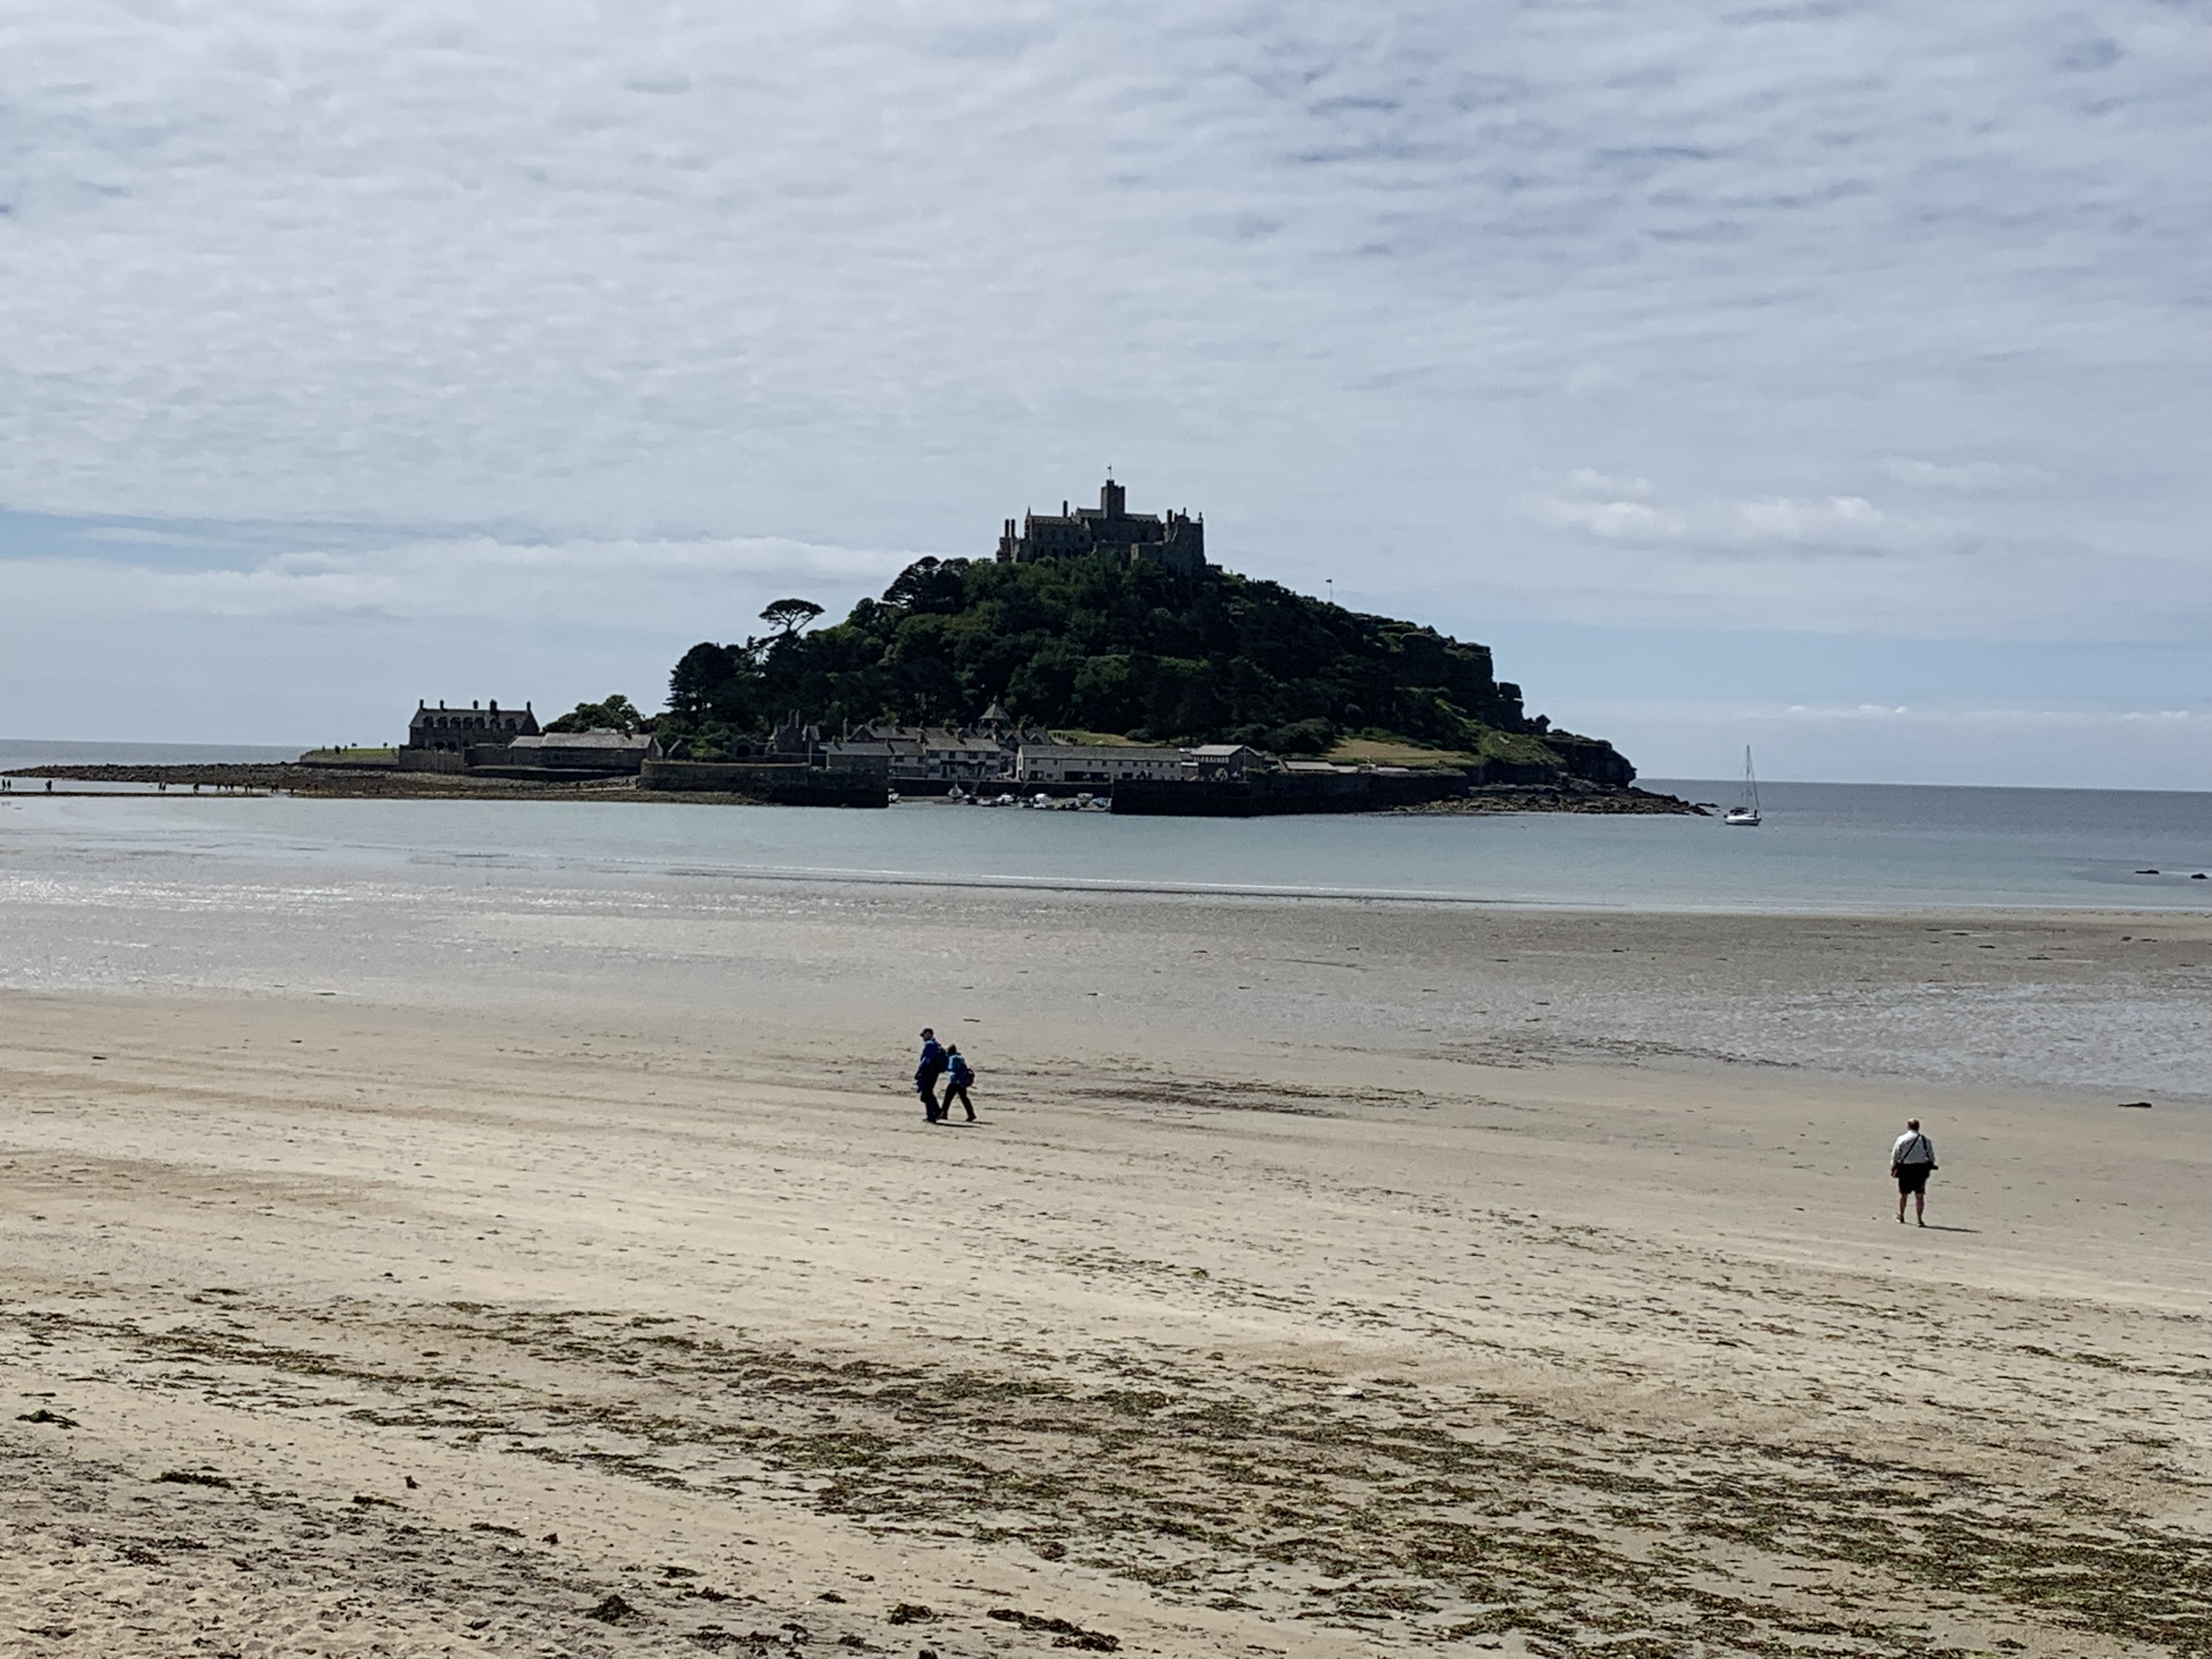 St. Michael's Mount in Conrwall